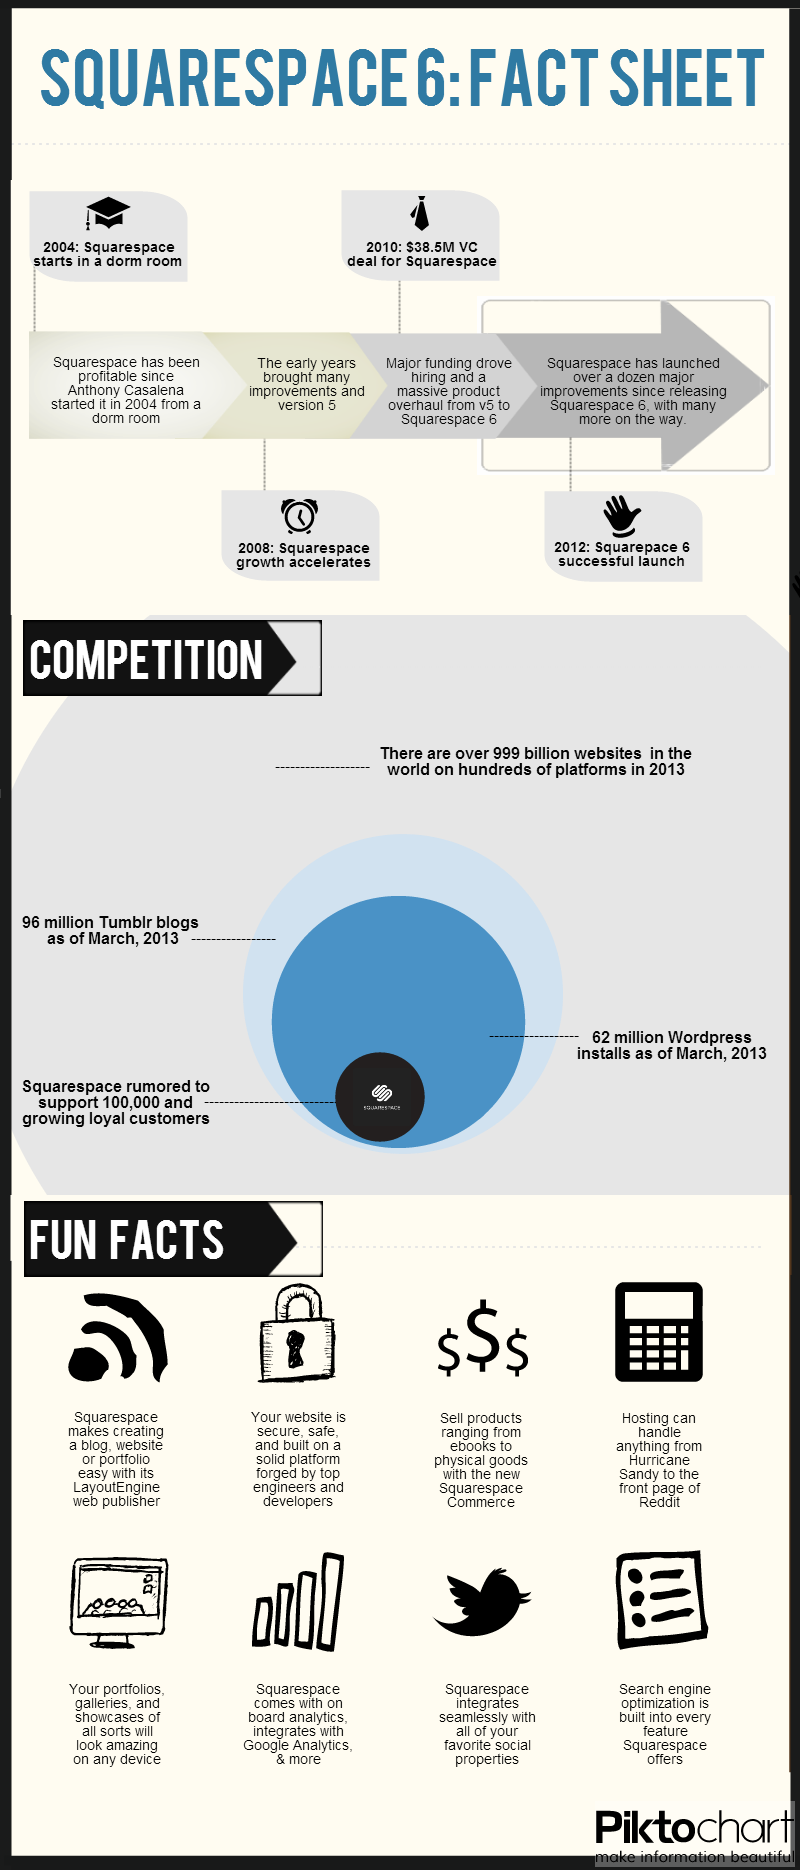 Squarespace 6 infographic